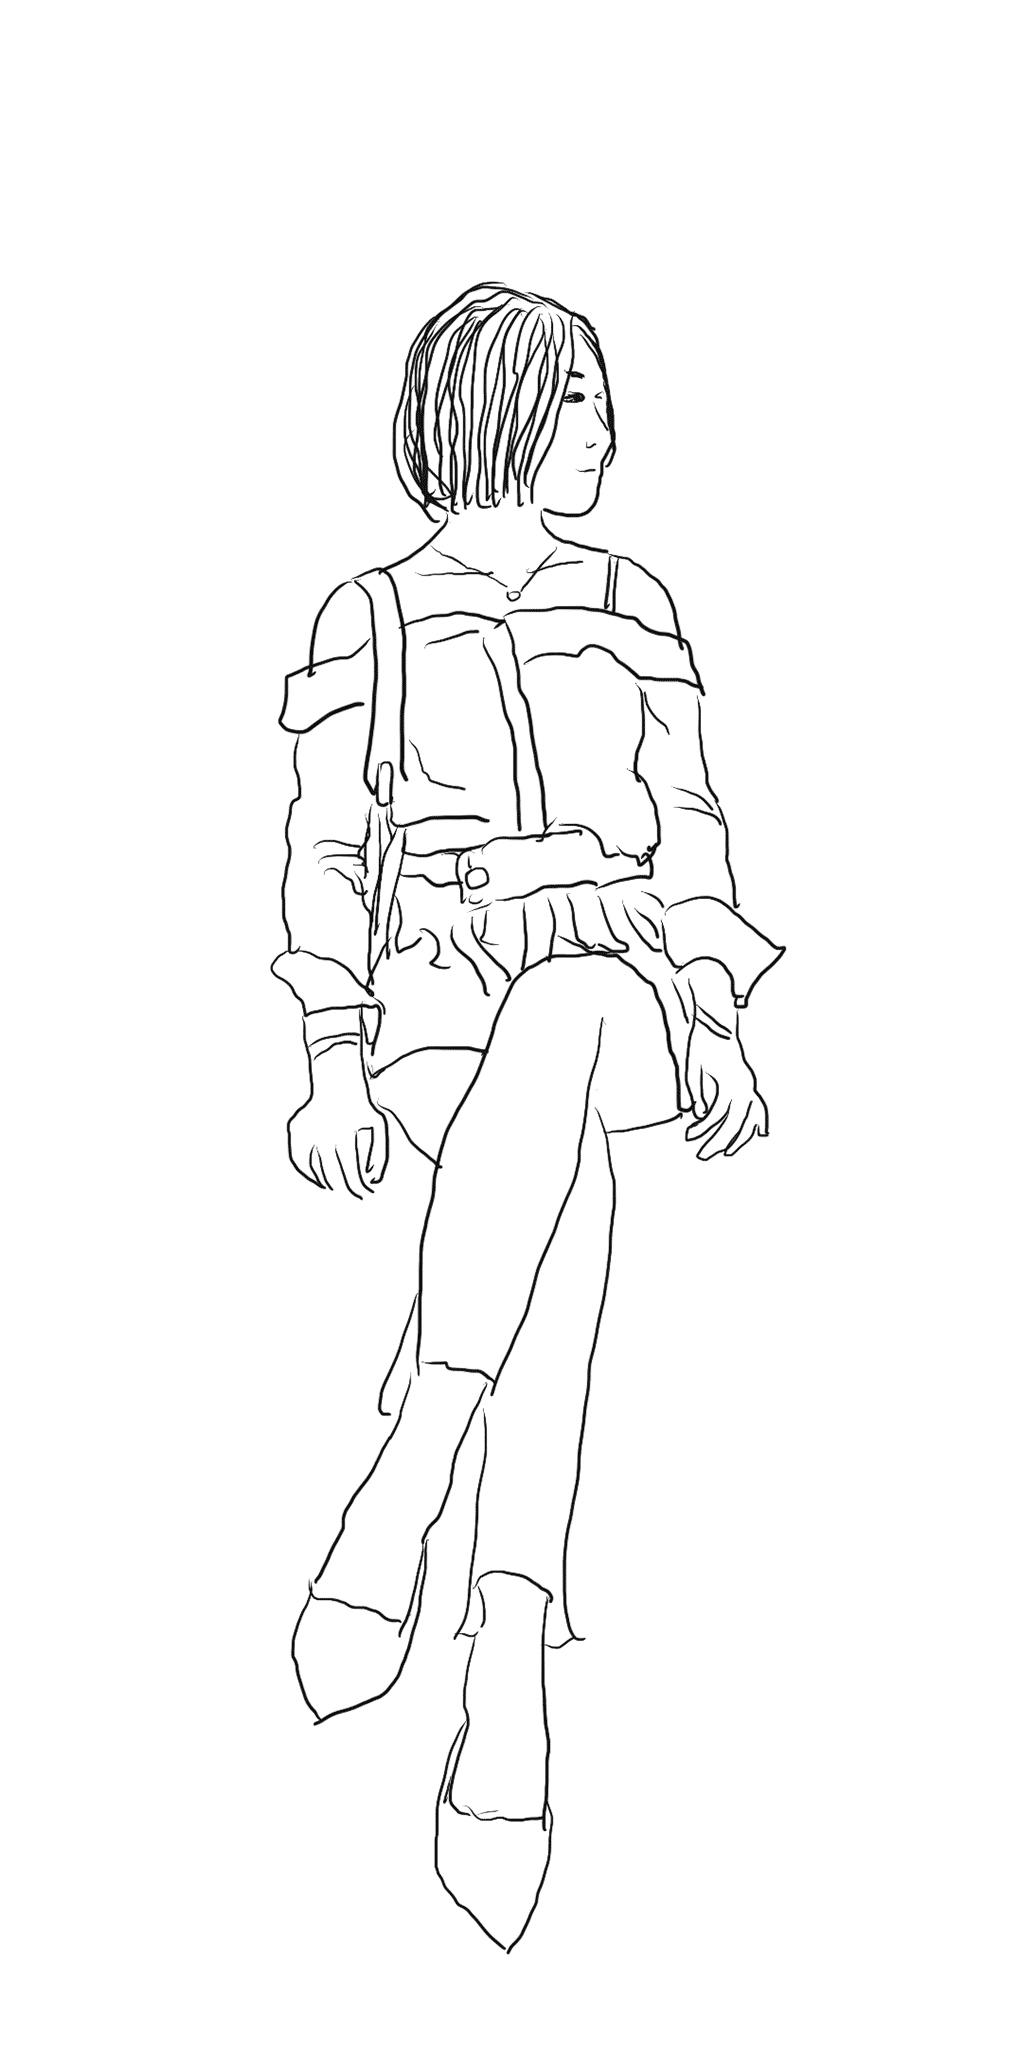 char6.png